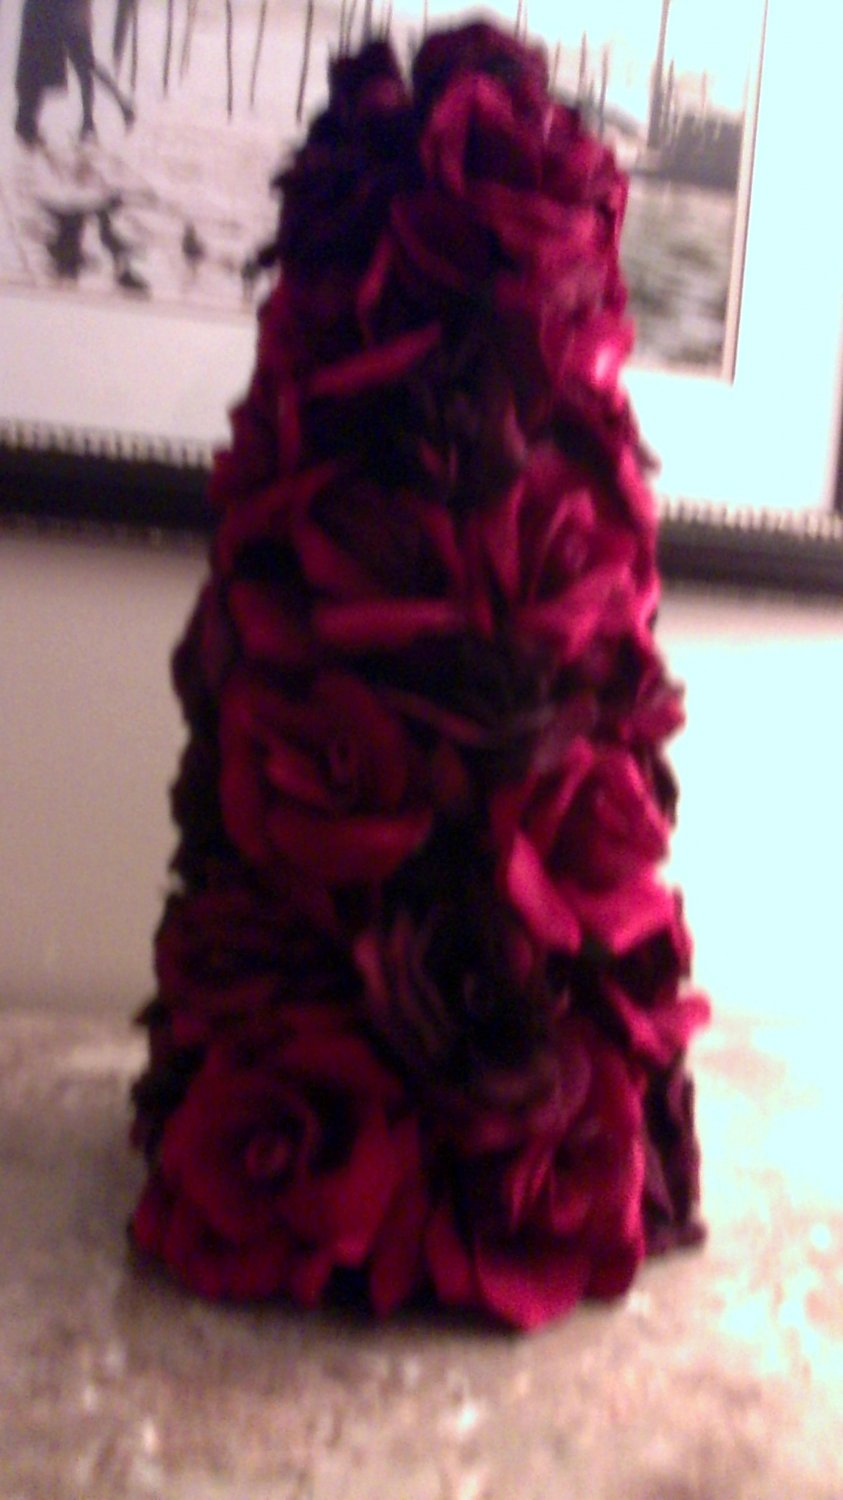 CHRISTMAS HOLIDAY SILK ROSE CONE ARRANGEMENT